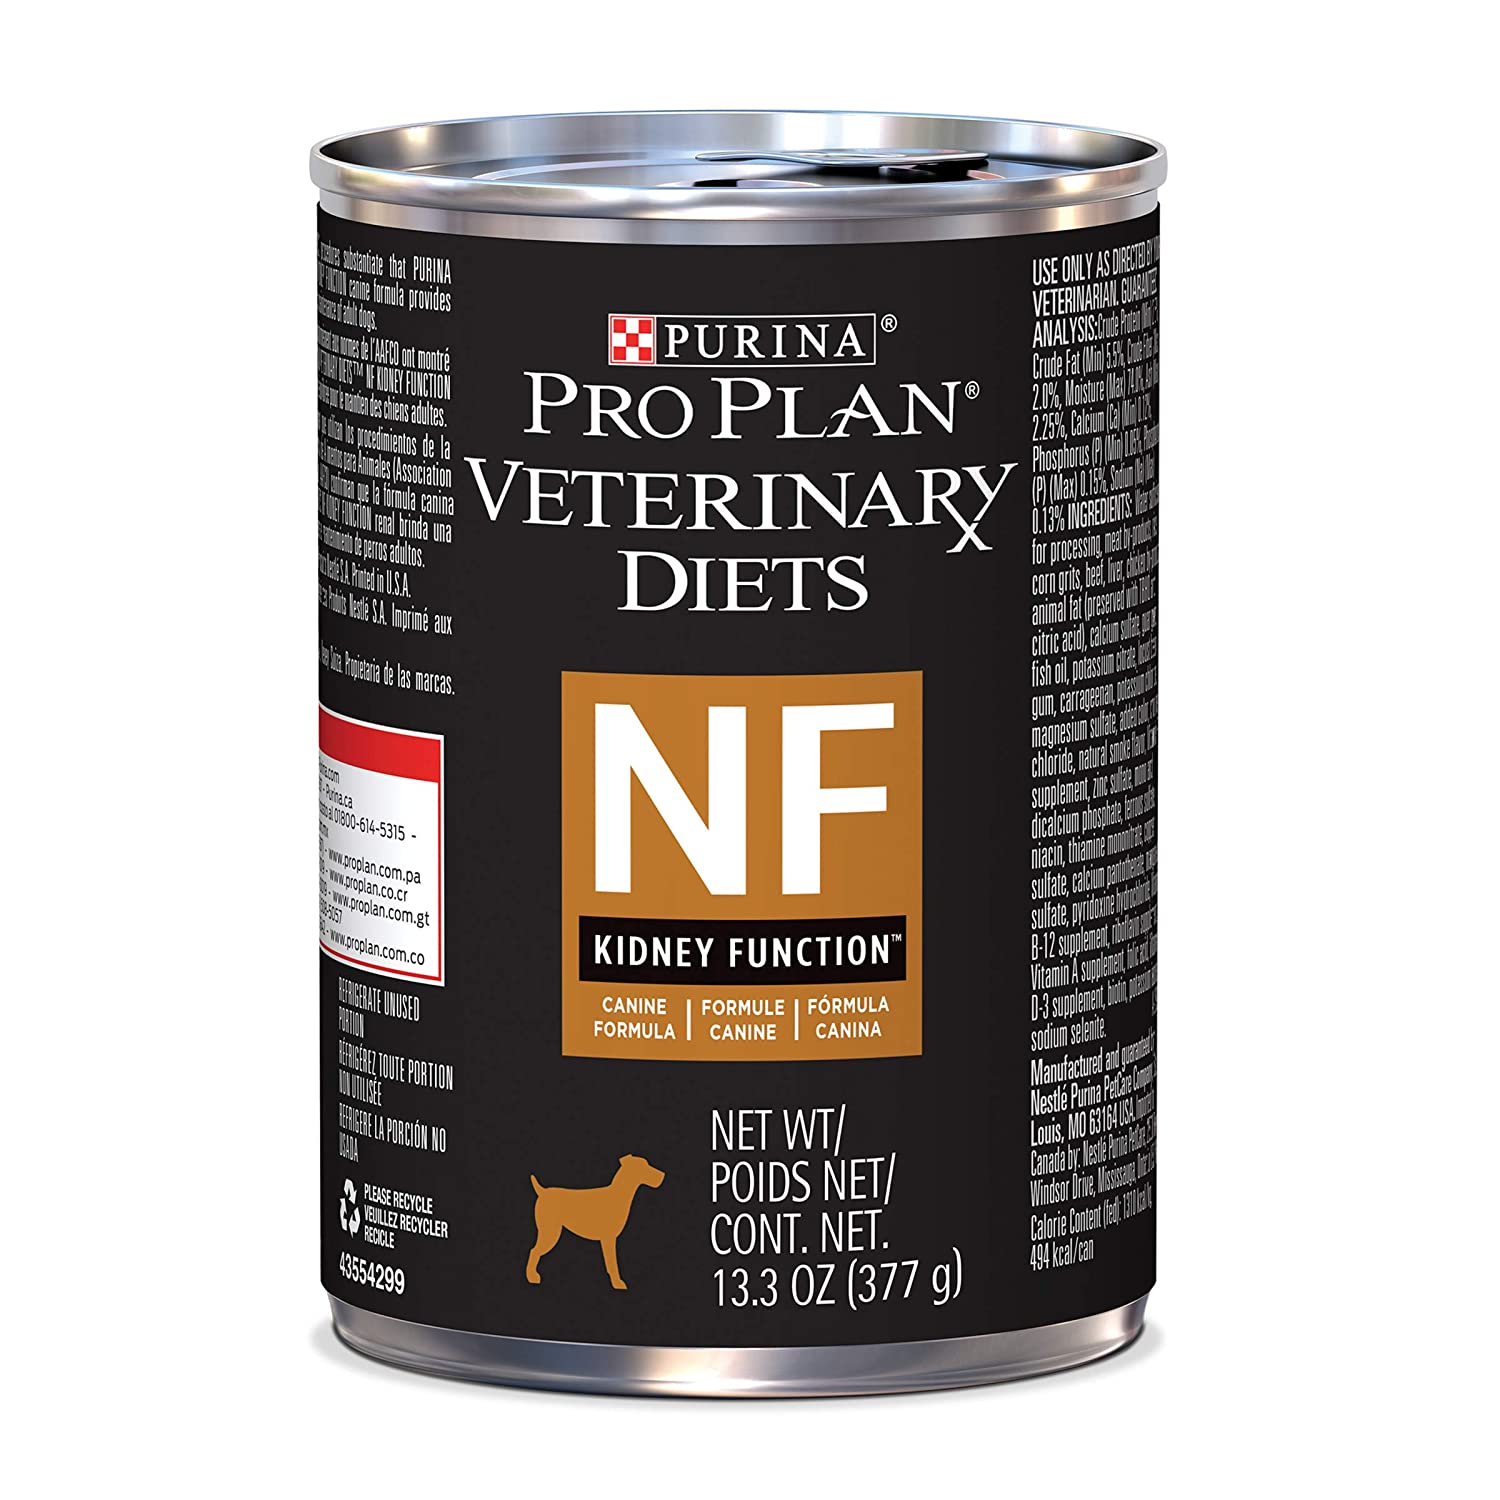 1. Purina Pro Plan Veterinary Diets NF Kidney Function Formula Canned Dog Food